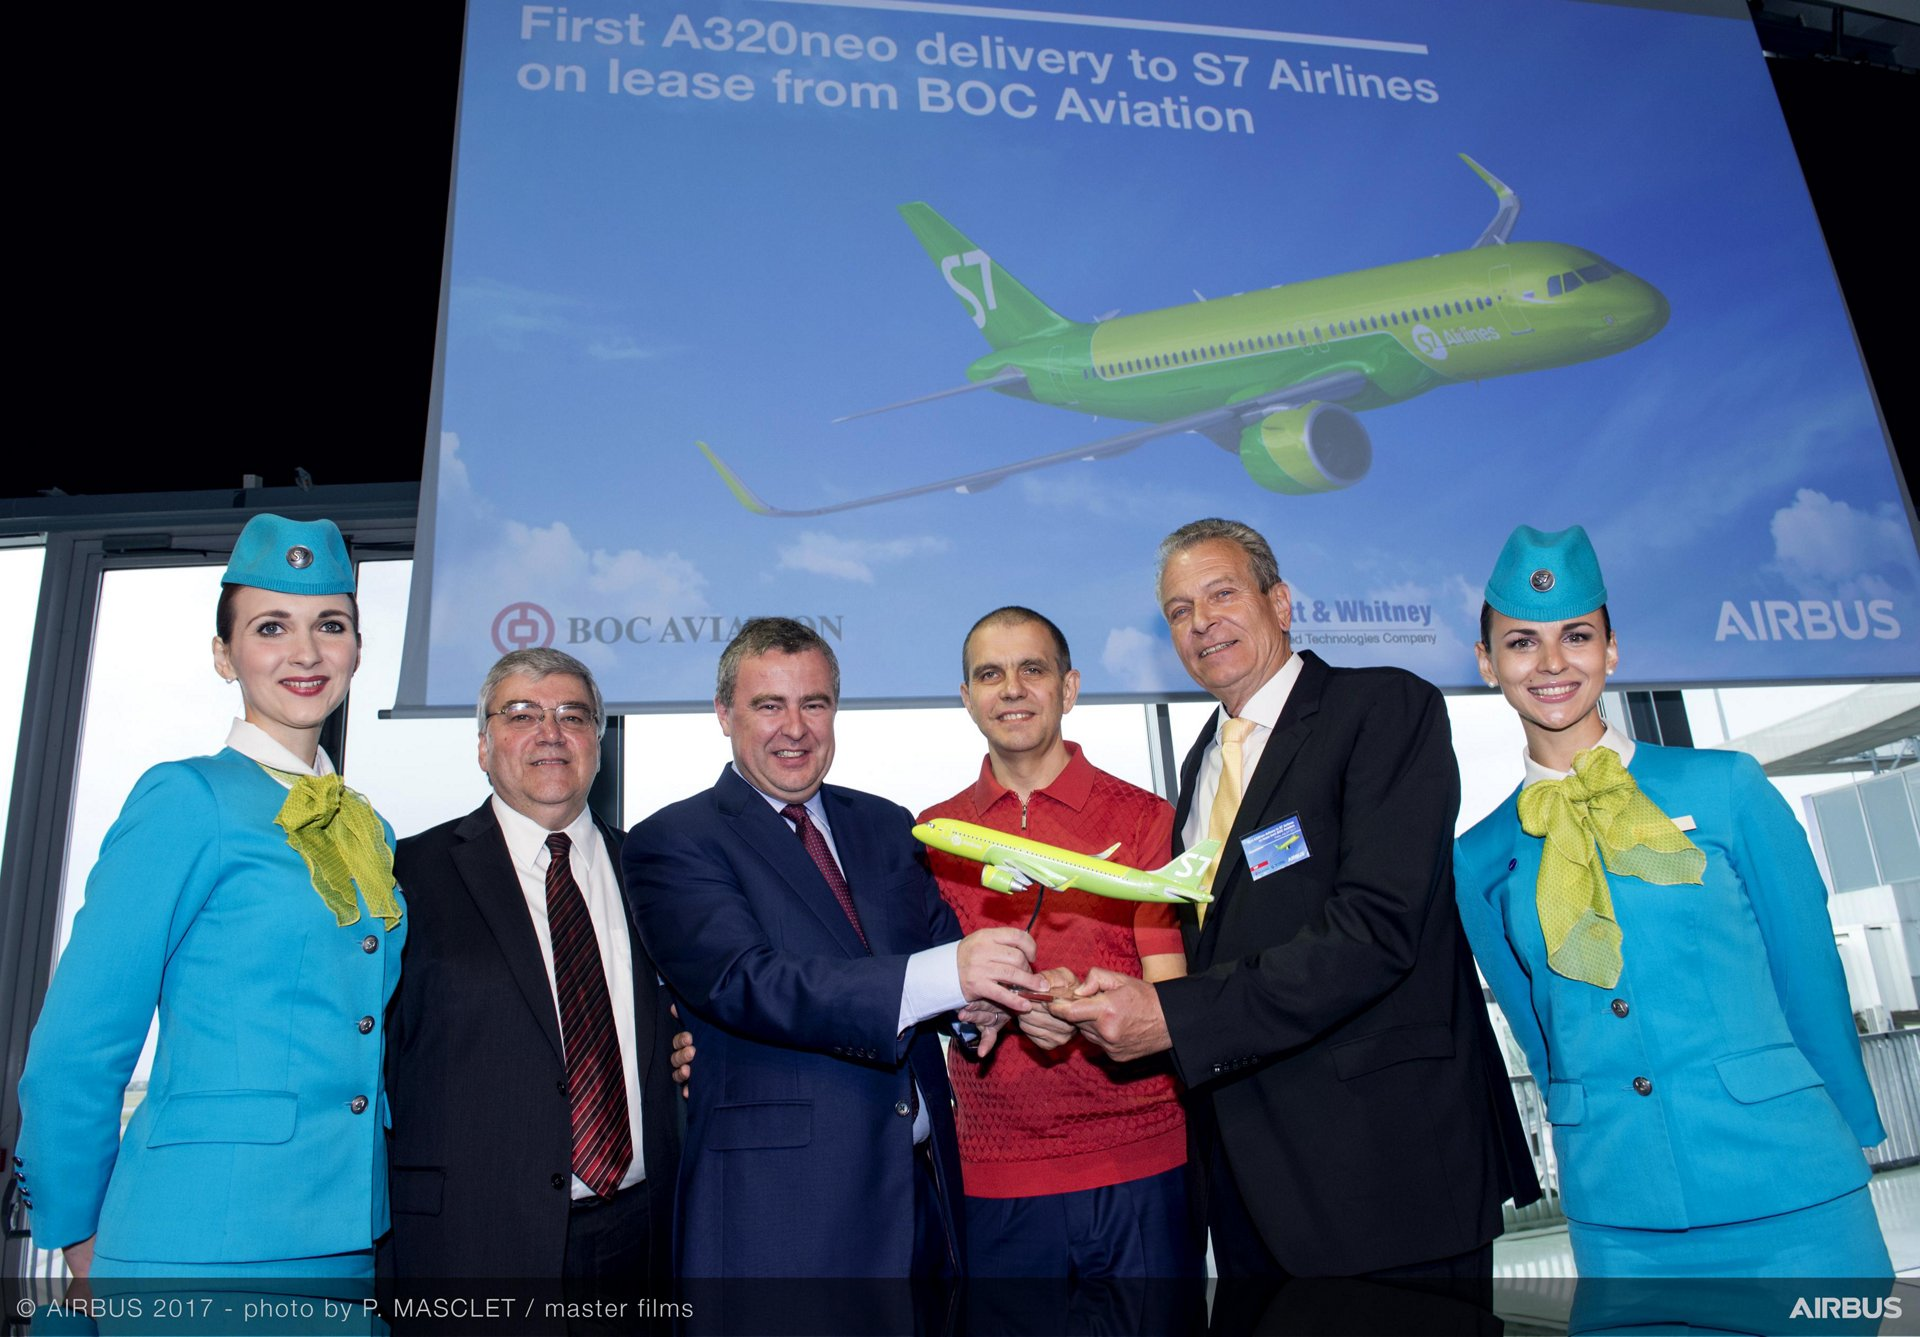 1st A320neo Delivery To S7 Airlines